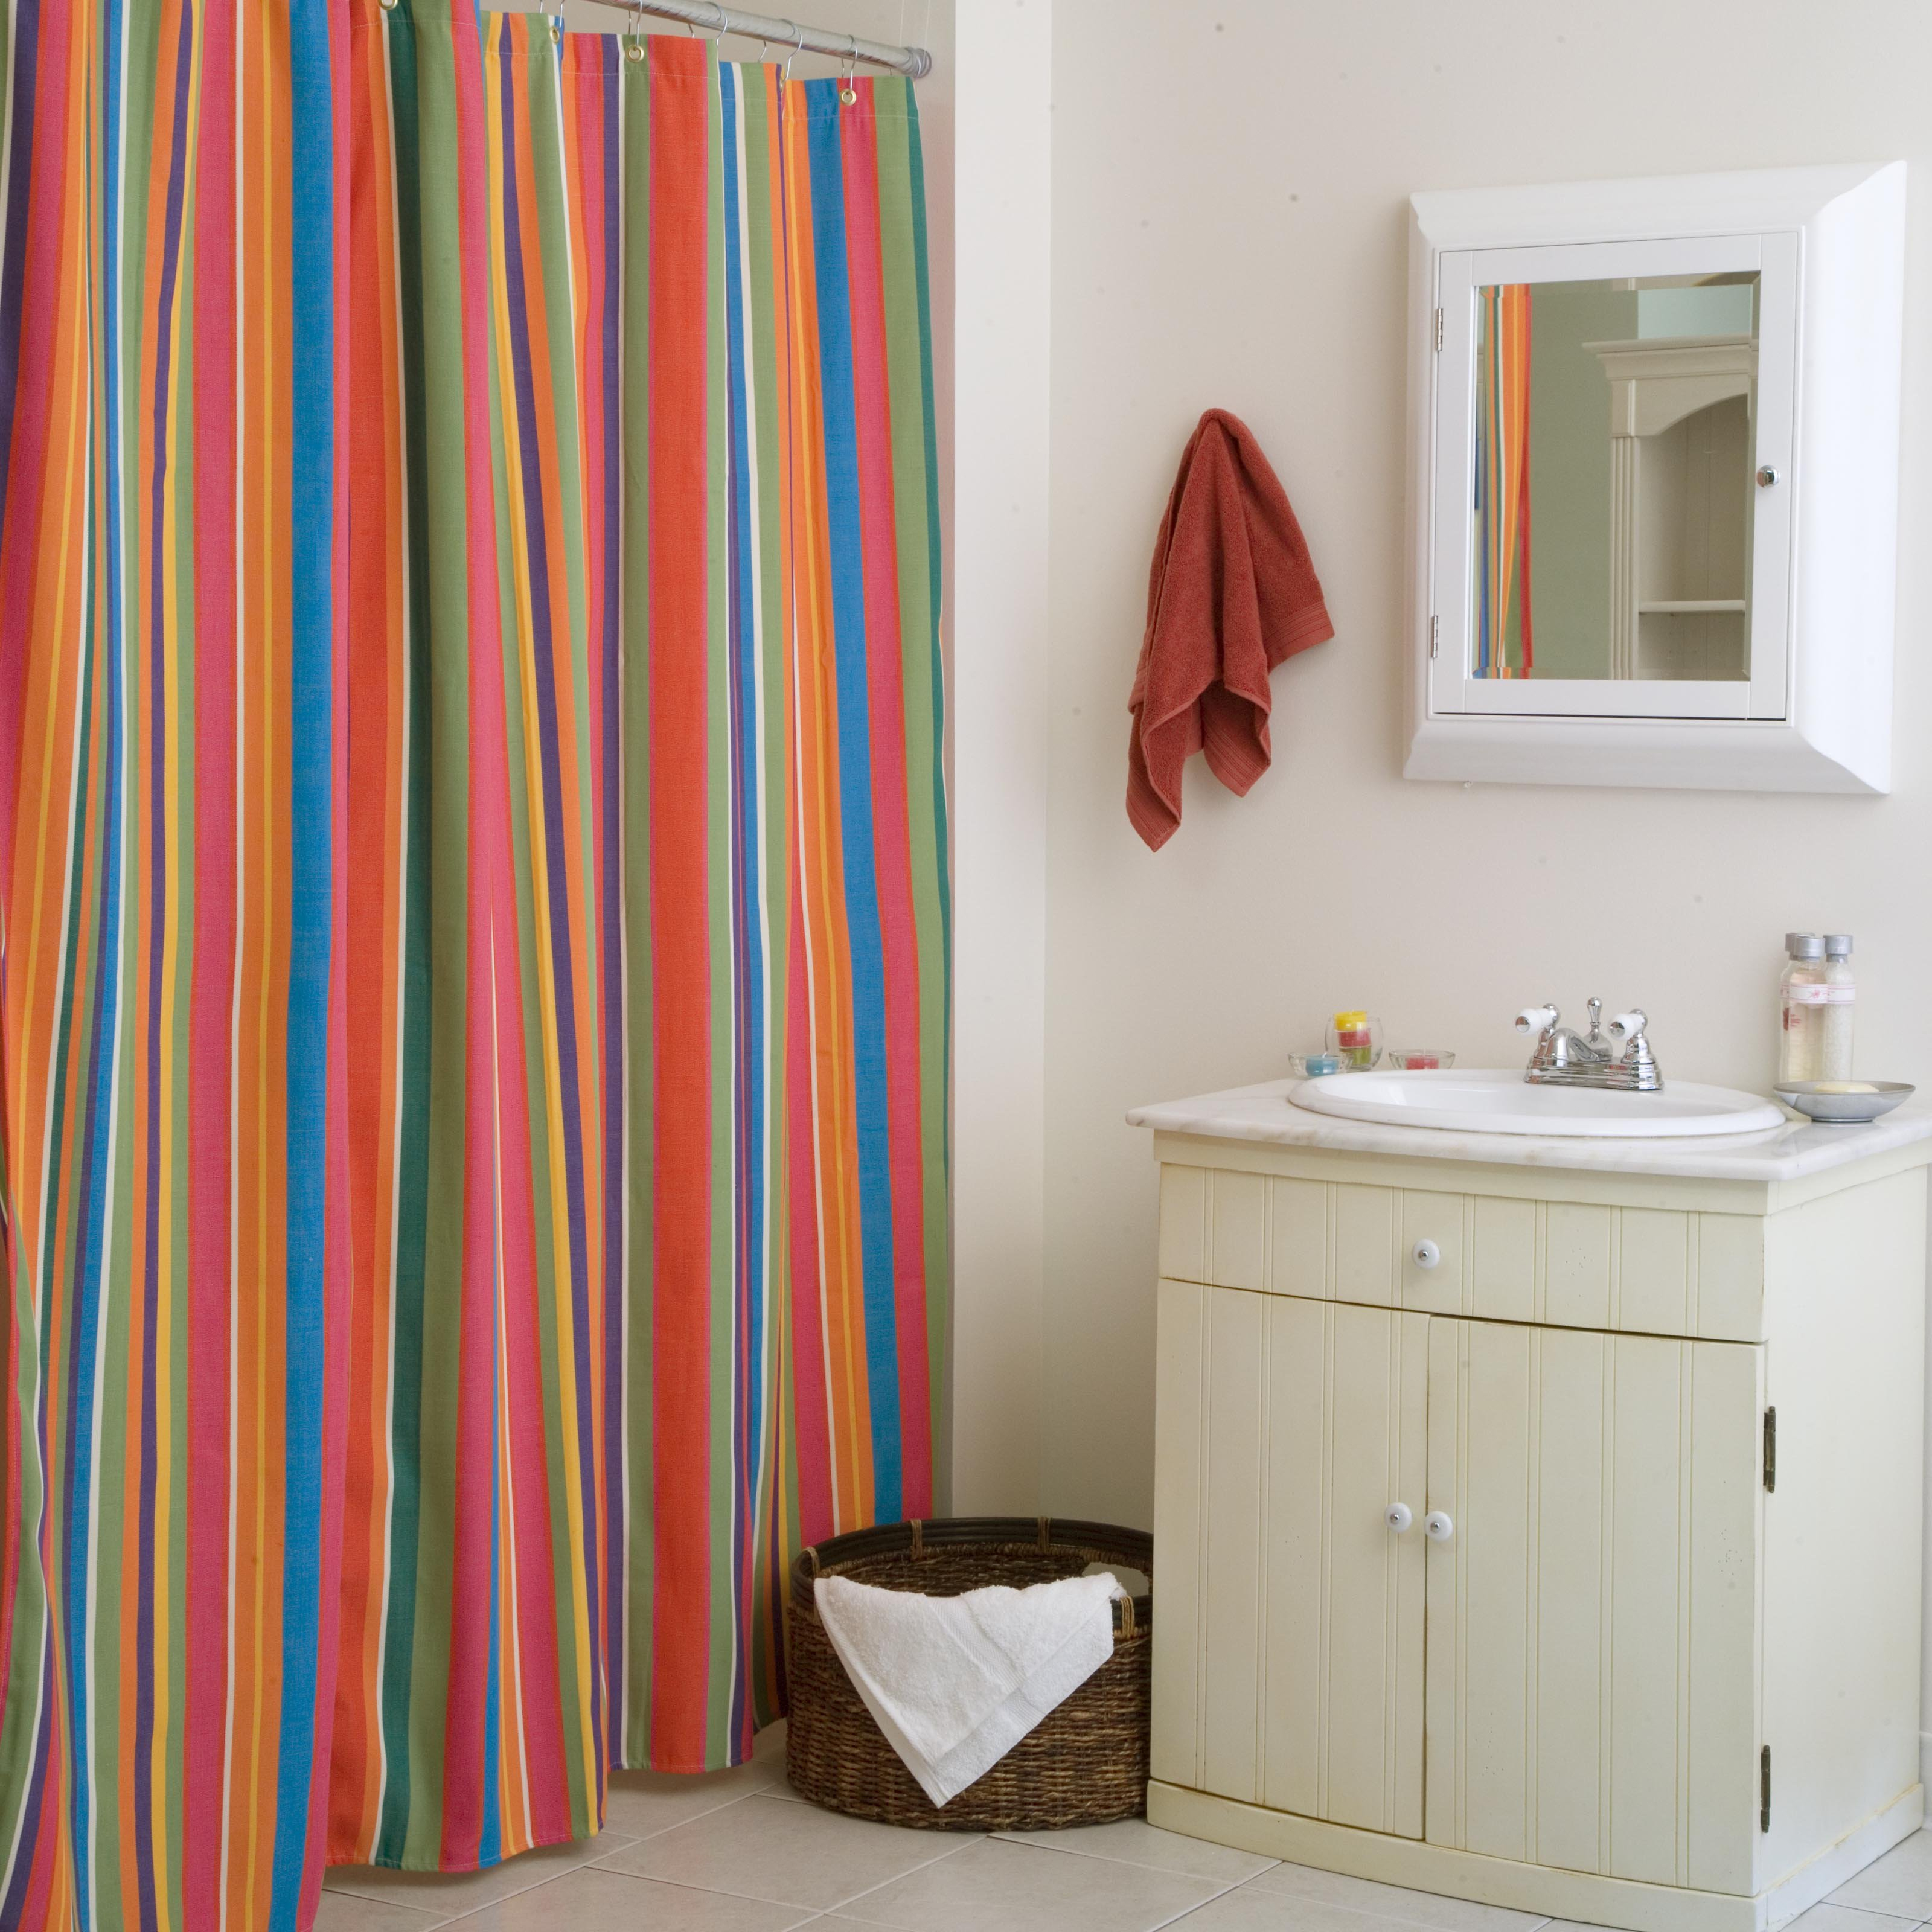 Cool Curved Curtain Images - Luxurious Bathtub Ideas and ...